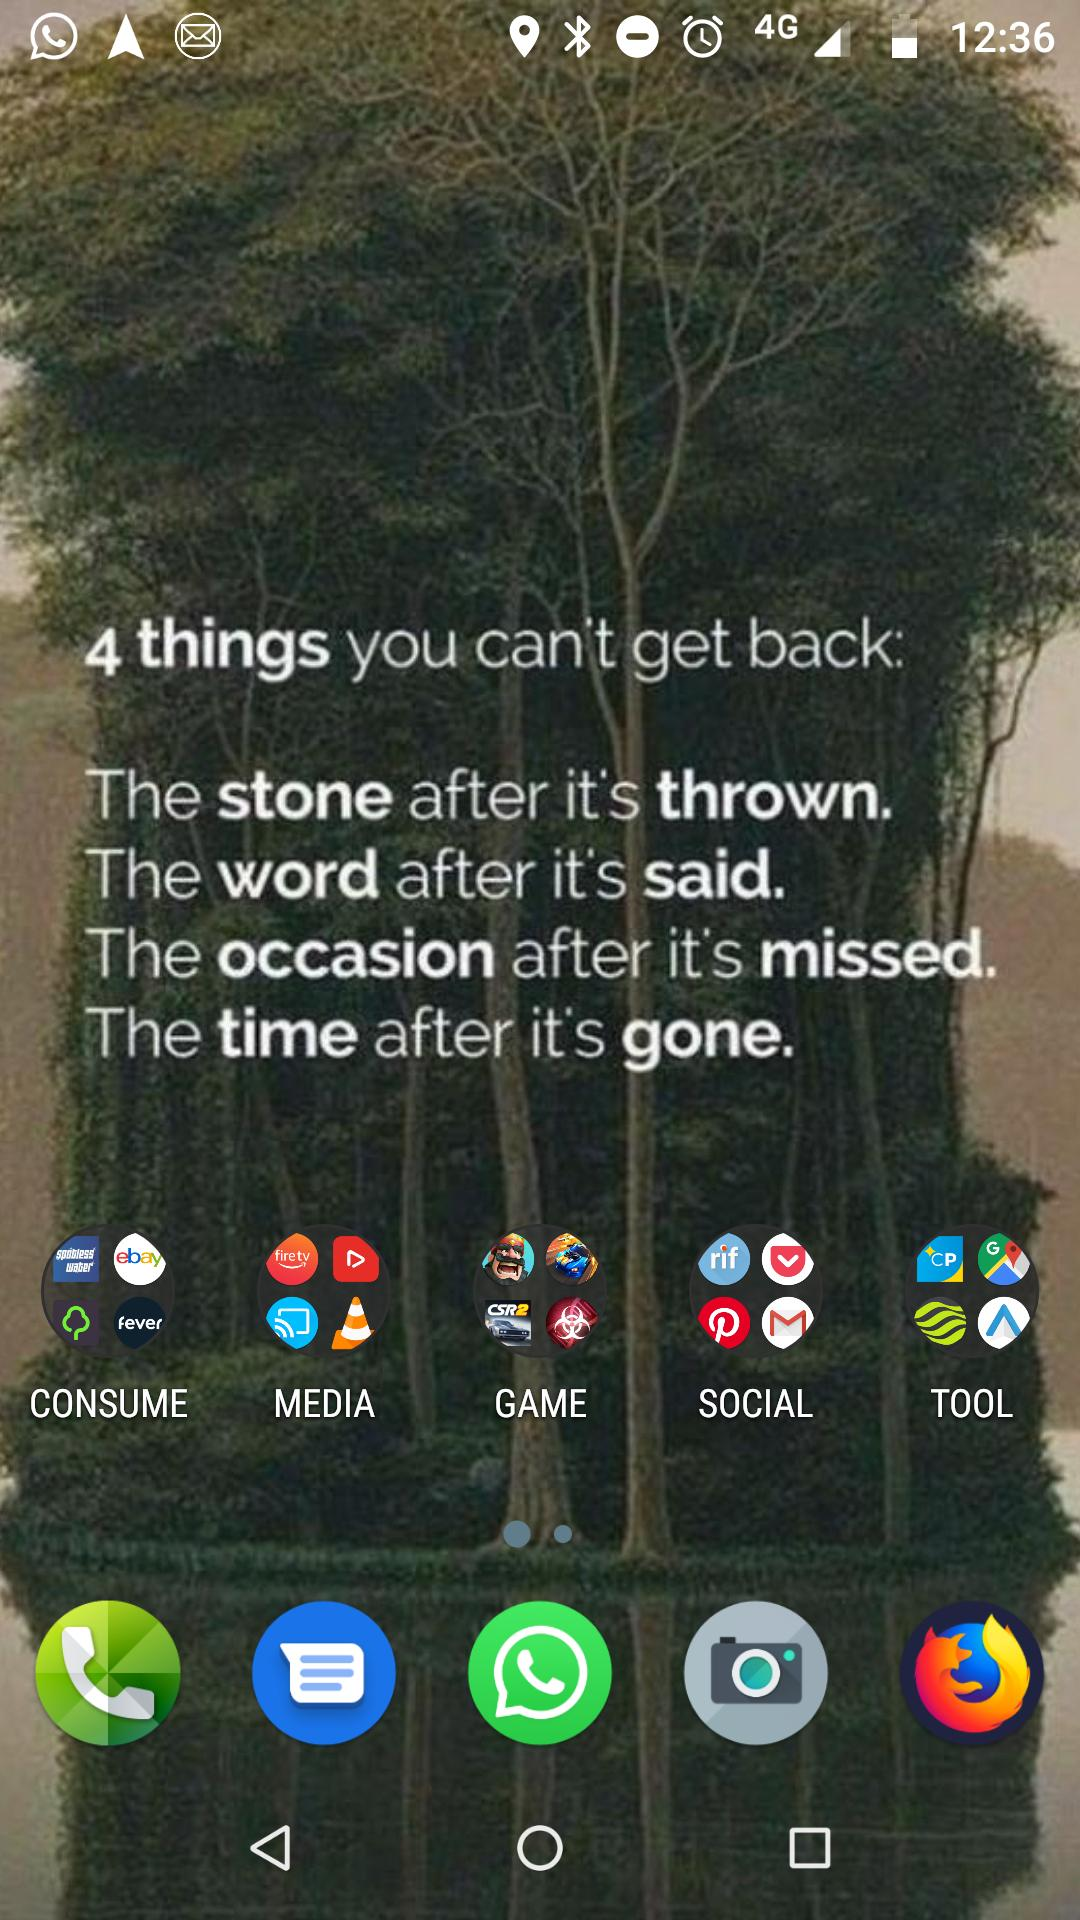 [image] Many of the images with supposedly pithy monologues or one liners do nothing for me. The four sentences on this always stand up to scrutiny and always ring true. So I keep it as phone desktop.